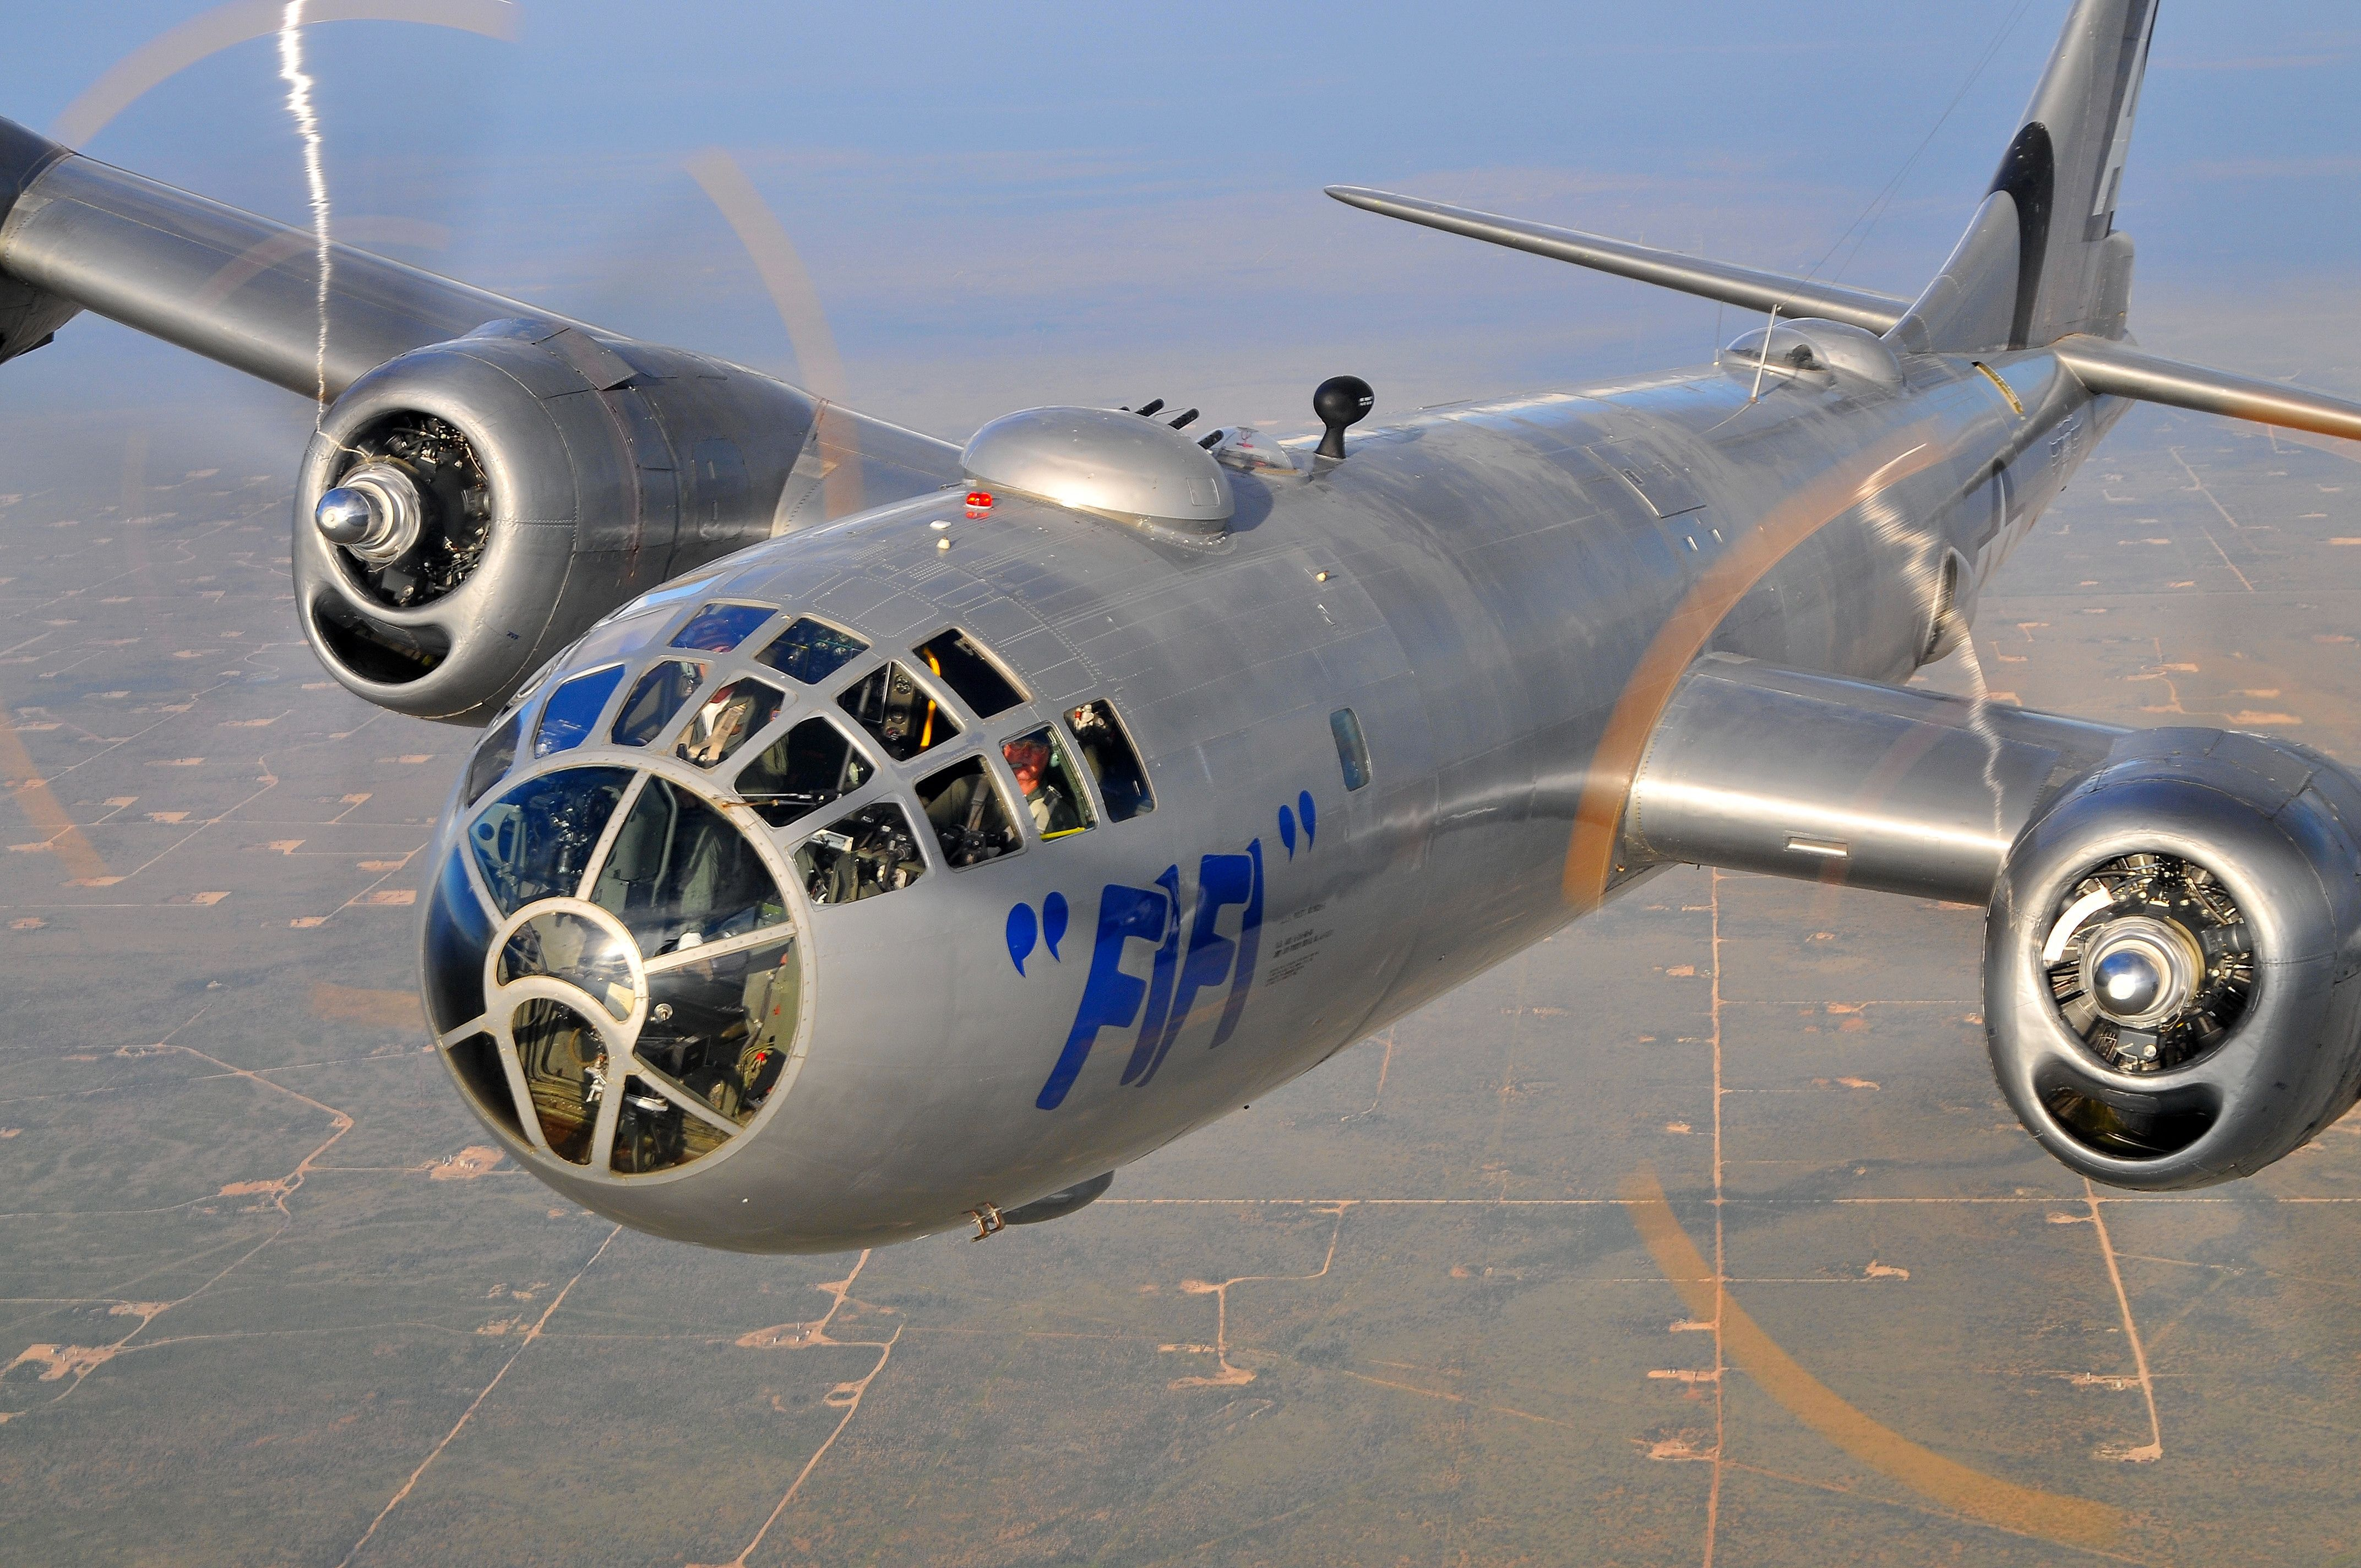 FIFI the B29 will be at the Fargo Air Museum August 811